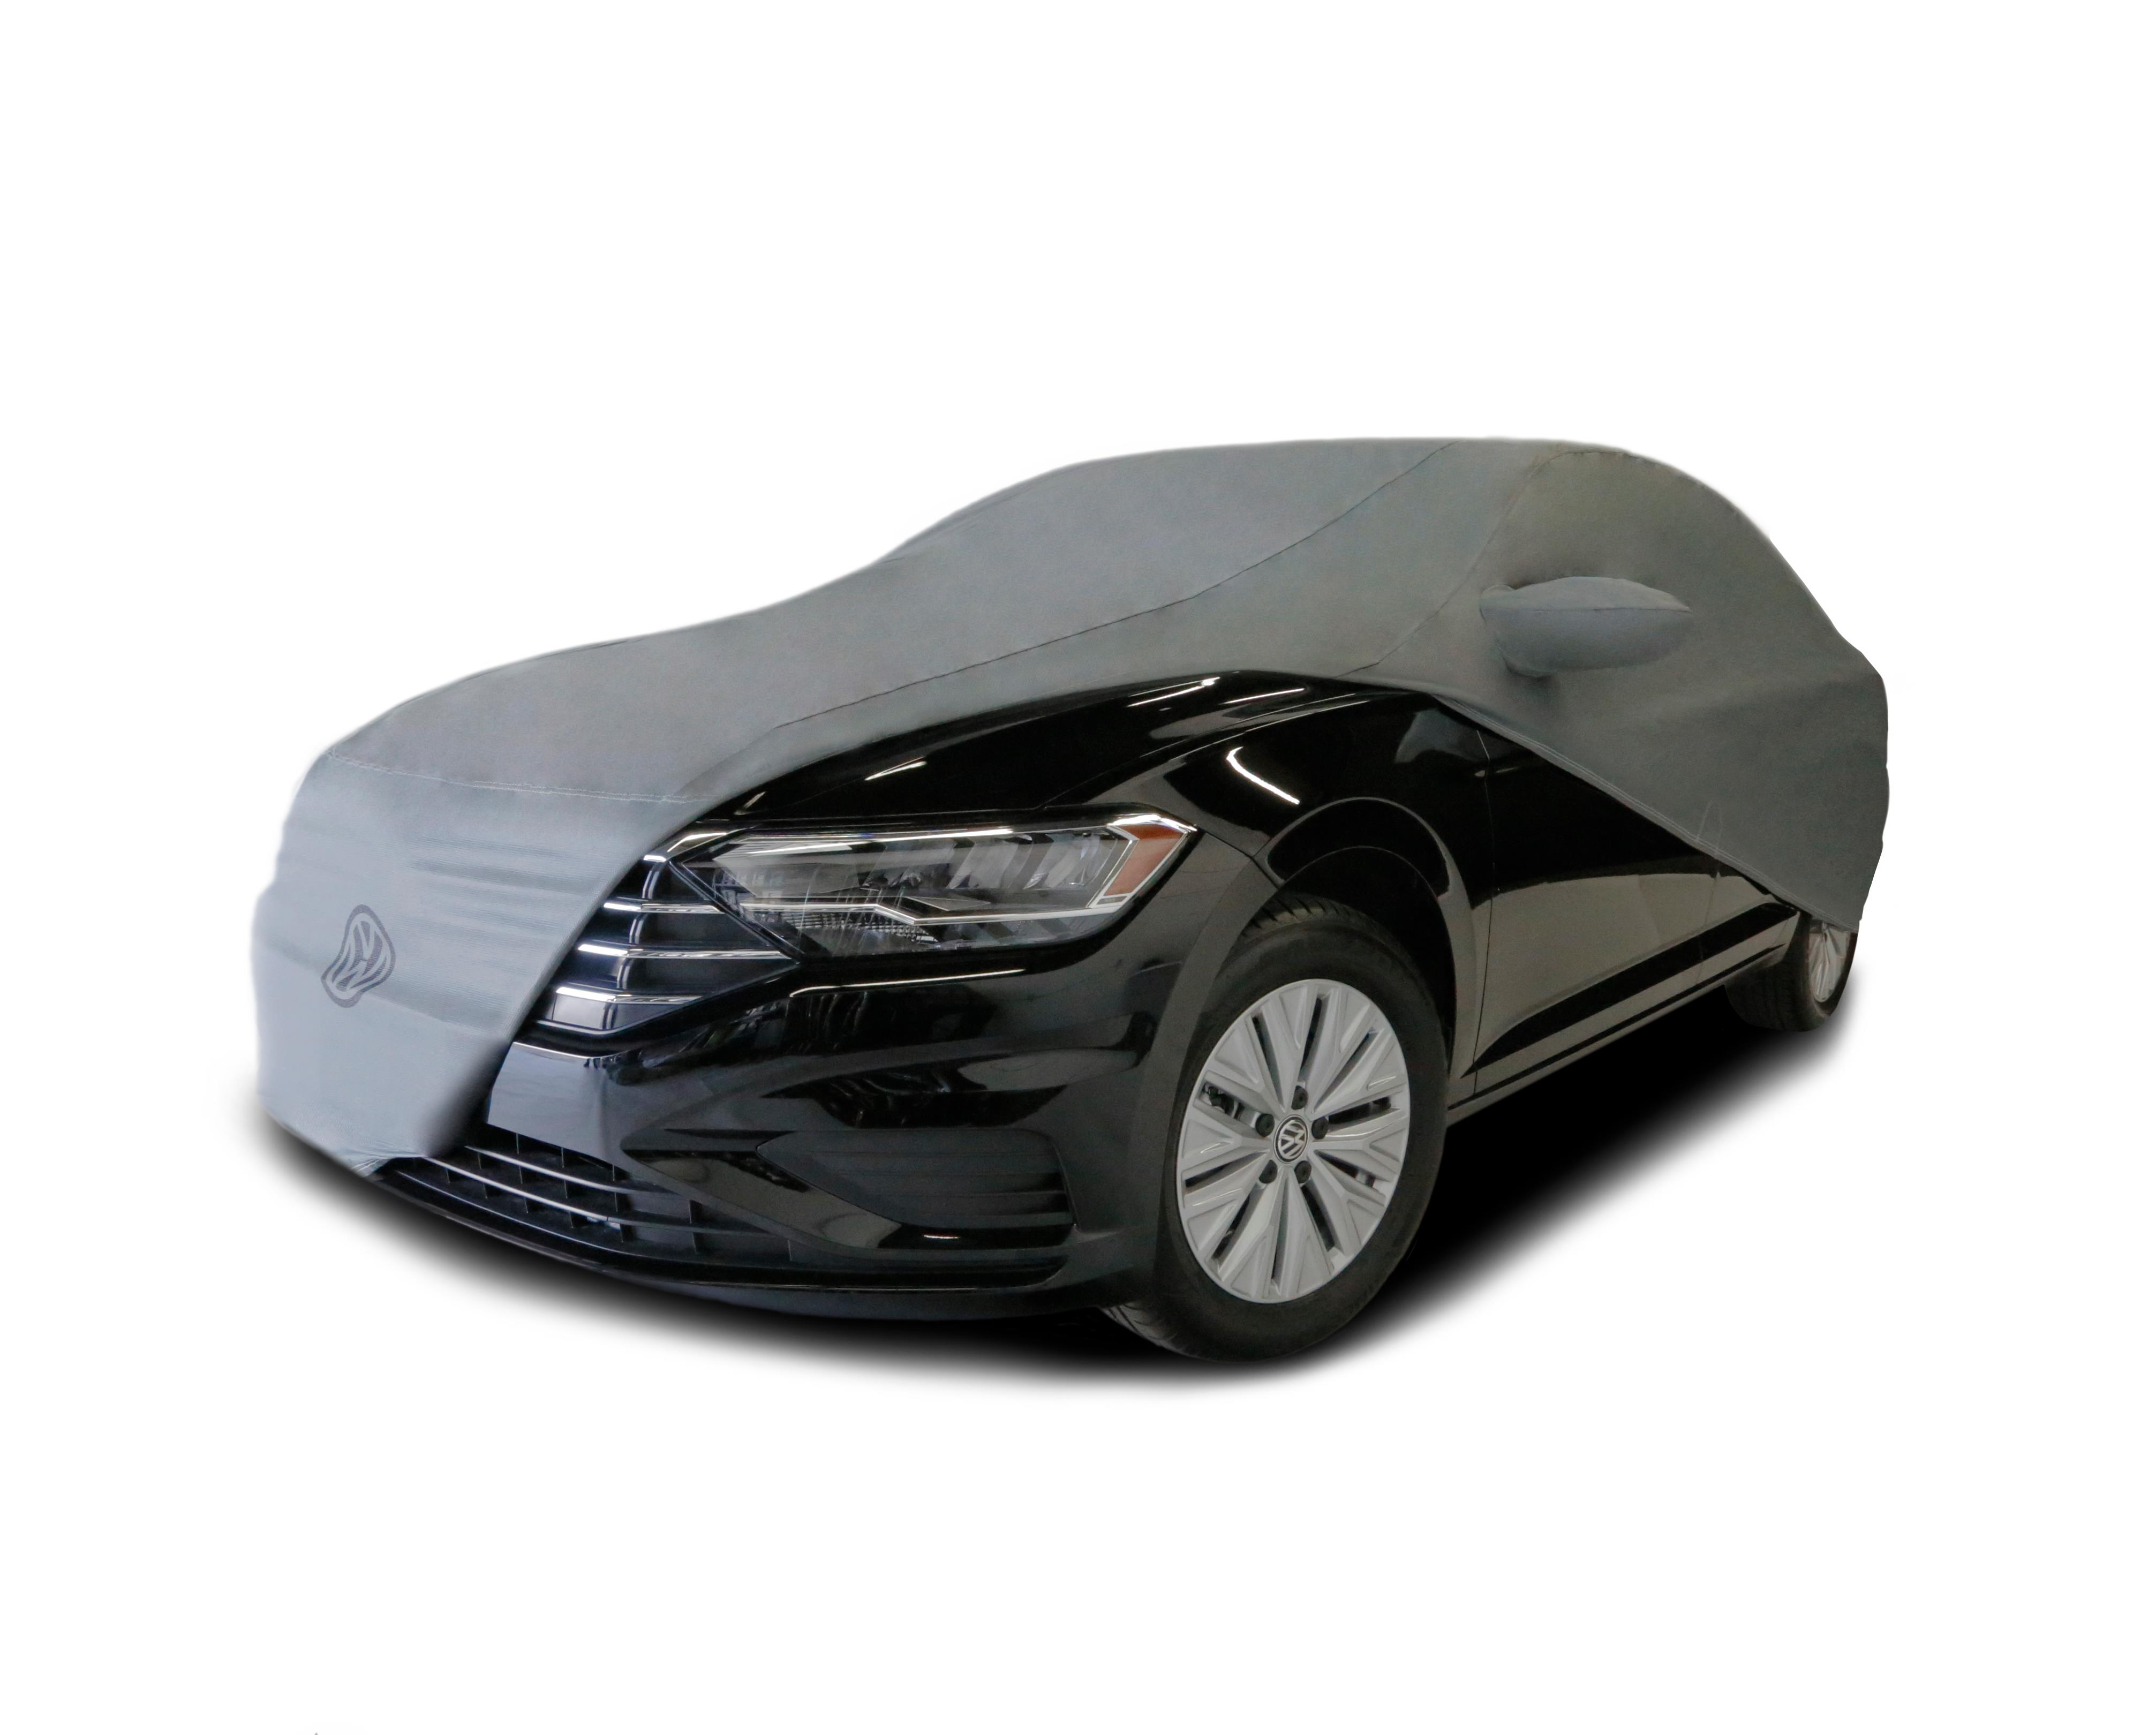 Volkswagen Jetta Car Cover Triguard Without Roof